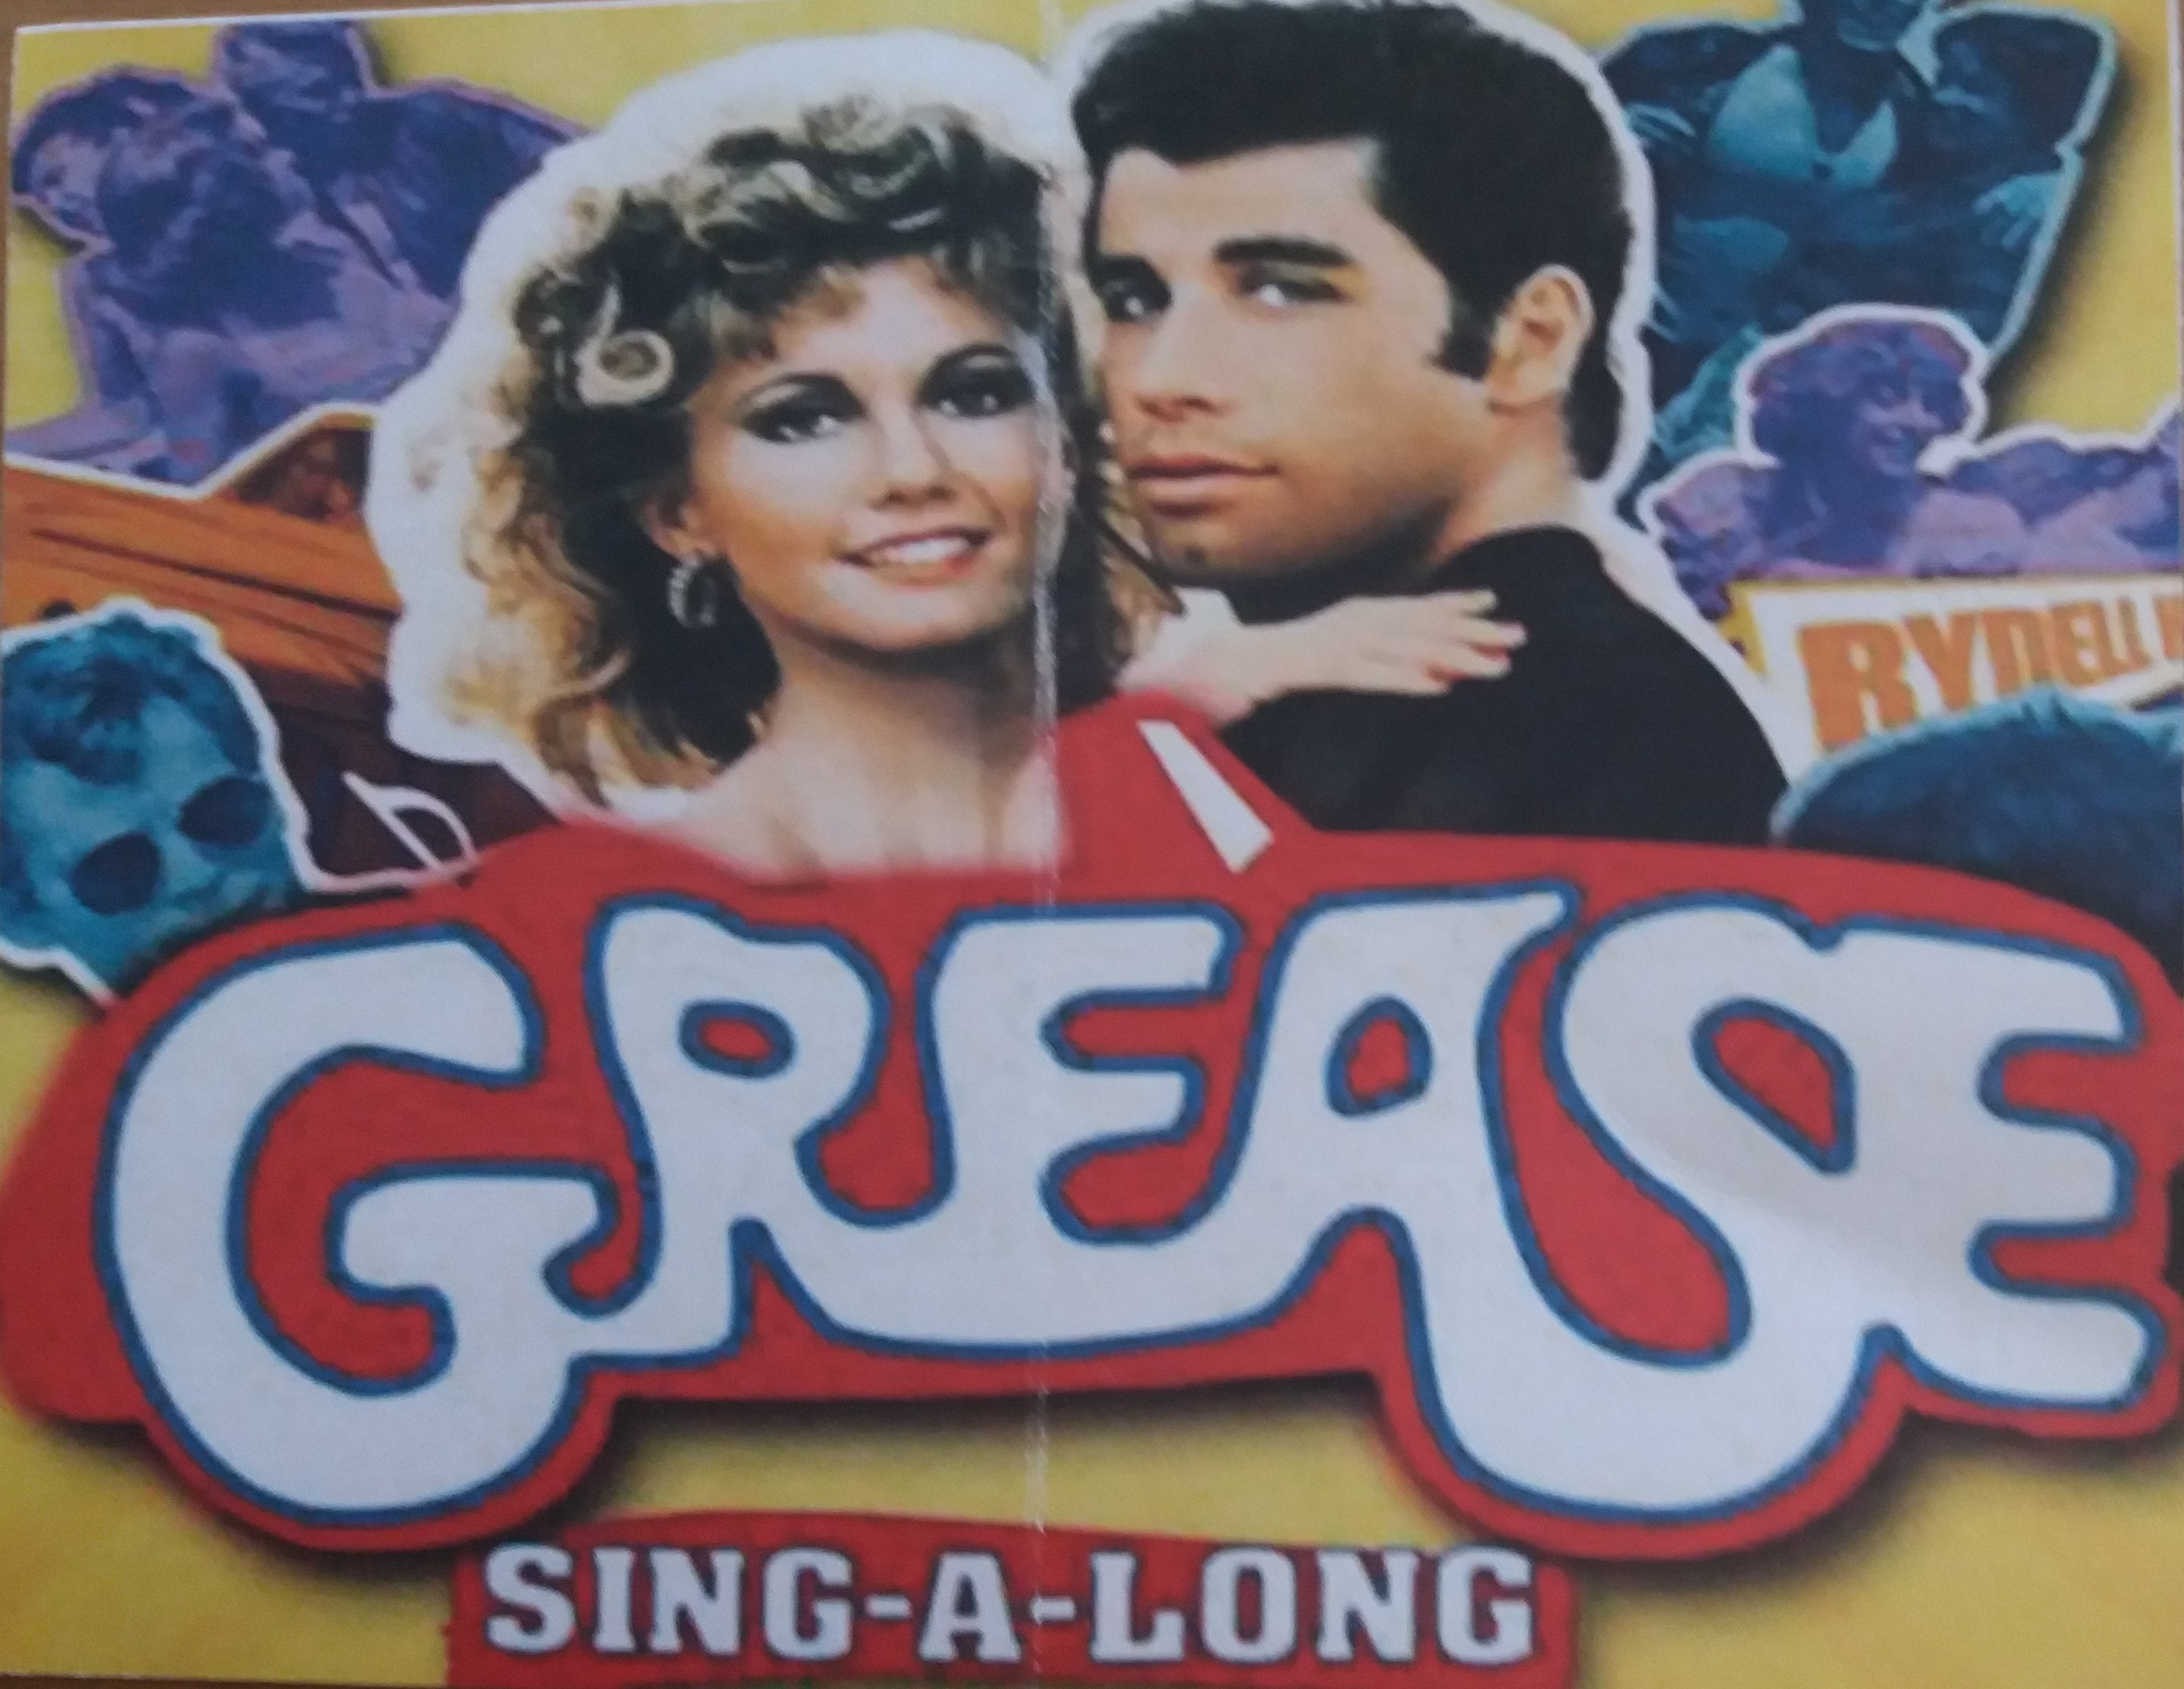 ook grease 2